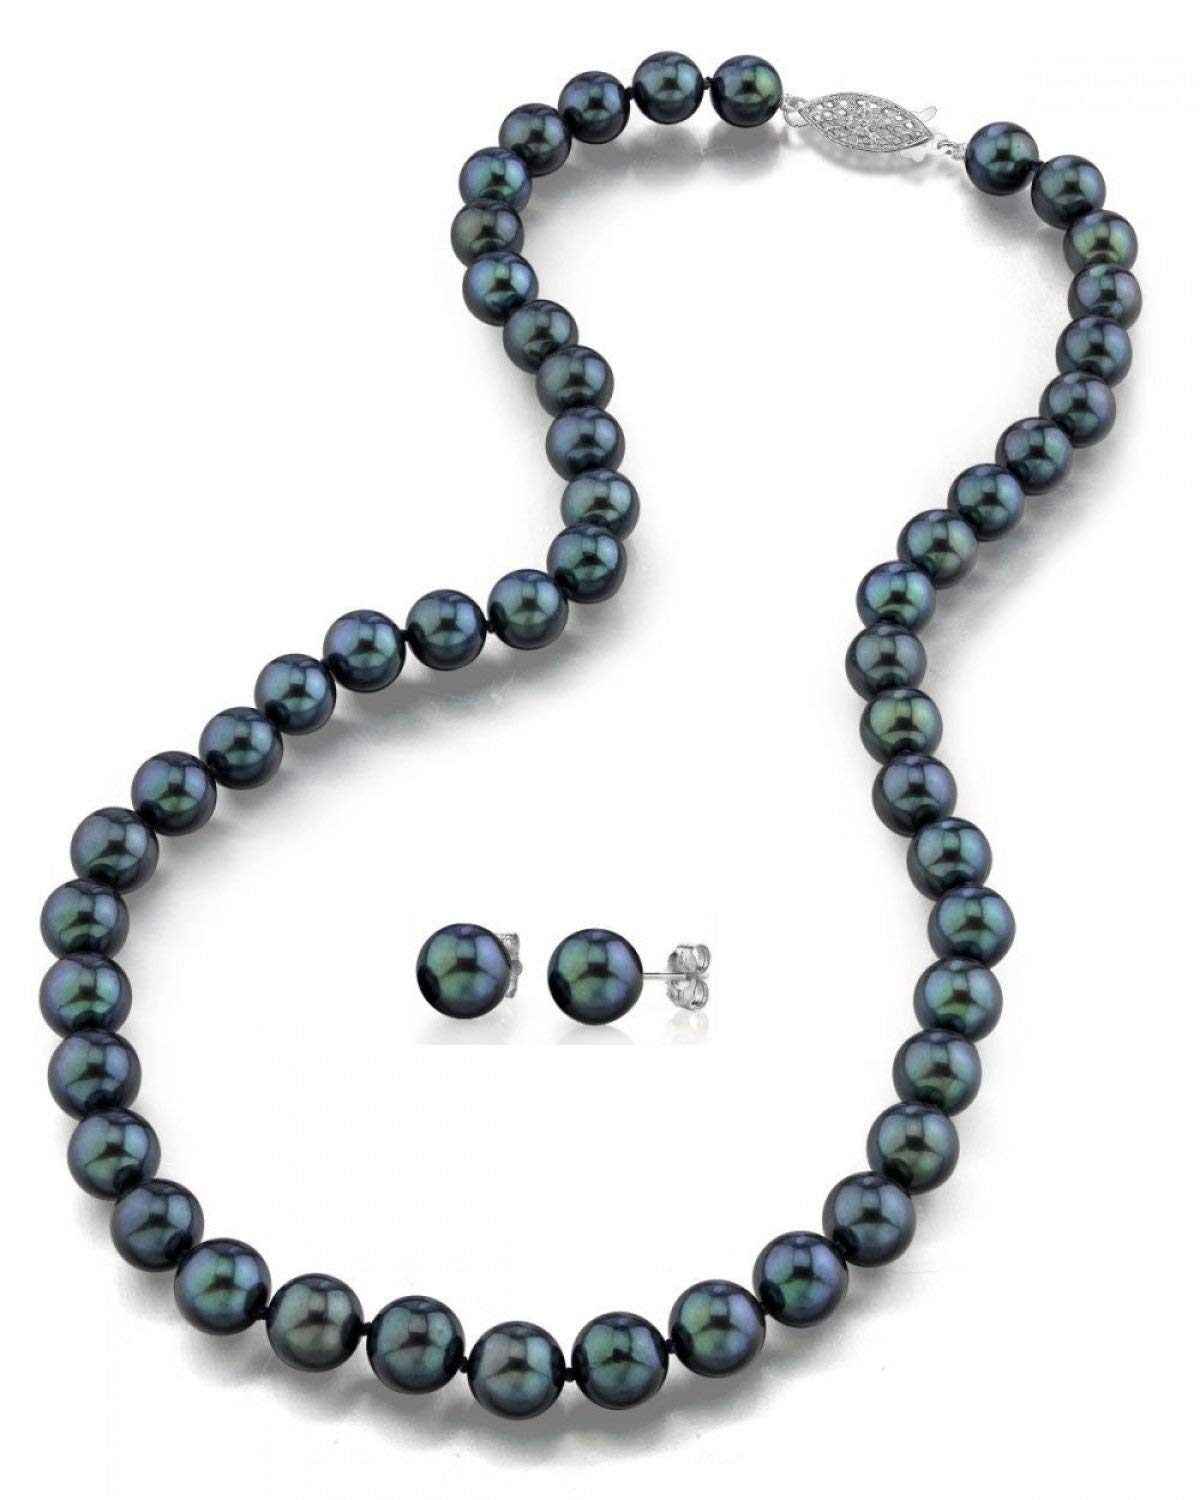 THE PEARL SOURCE 14K Gold 6.5-7mm AAA Quality Round Black Akoya Cultured Pearl Necklace & Earrings Set in 18'' Princess Length for Women